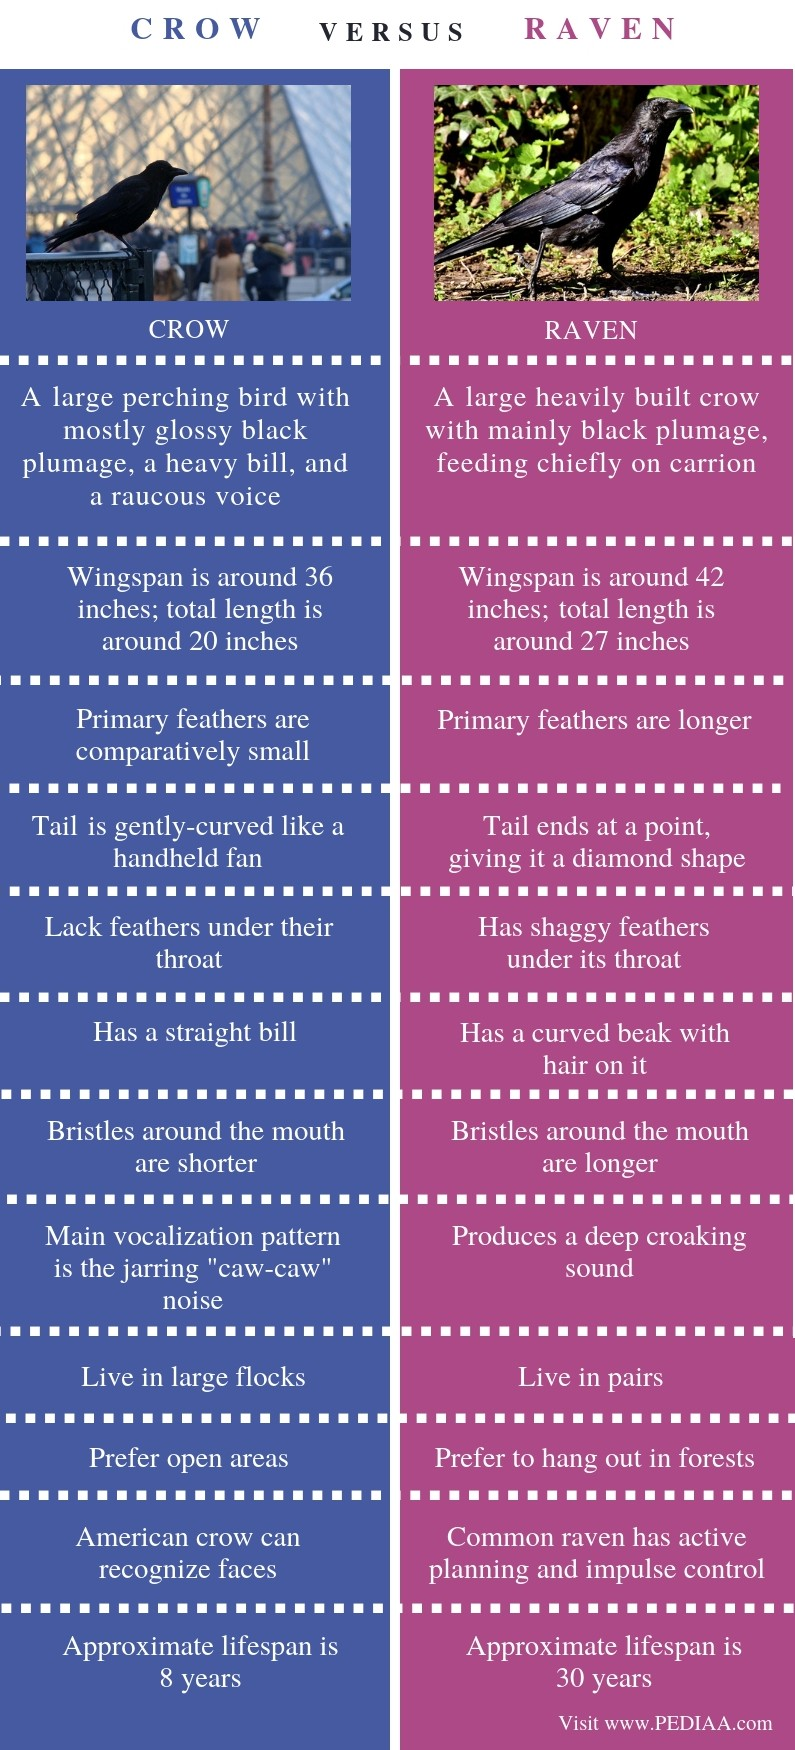 Difference Between Crow and Raven- Comparison Summary